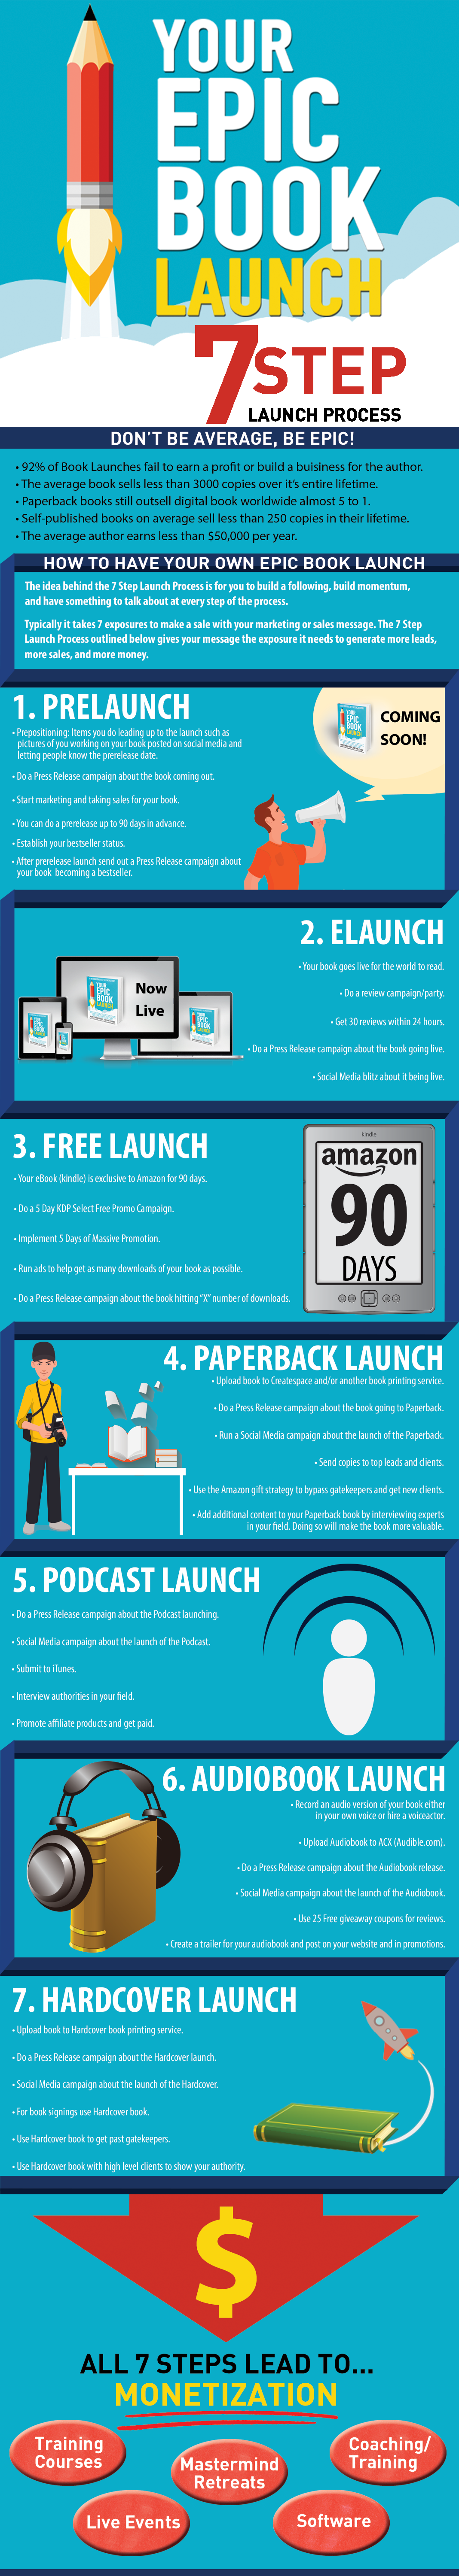 Epic Book Launch 7 Step Infographic